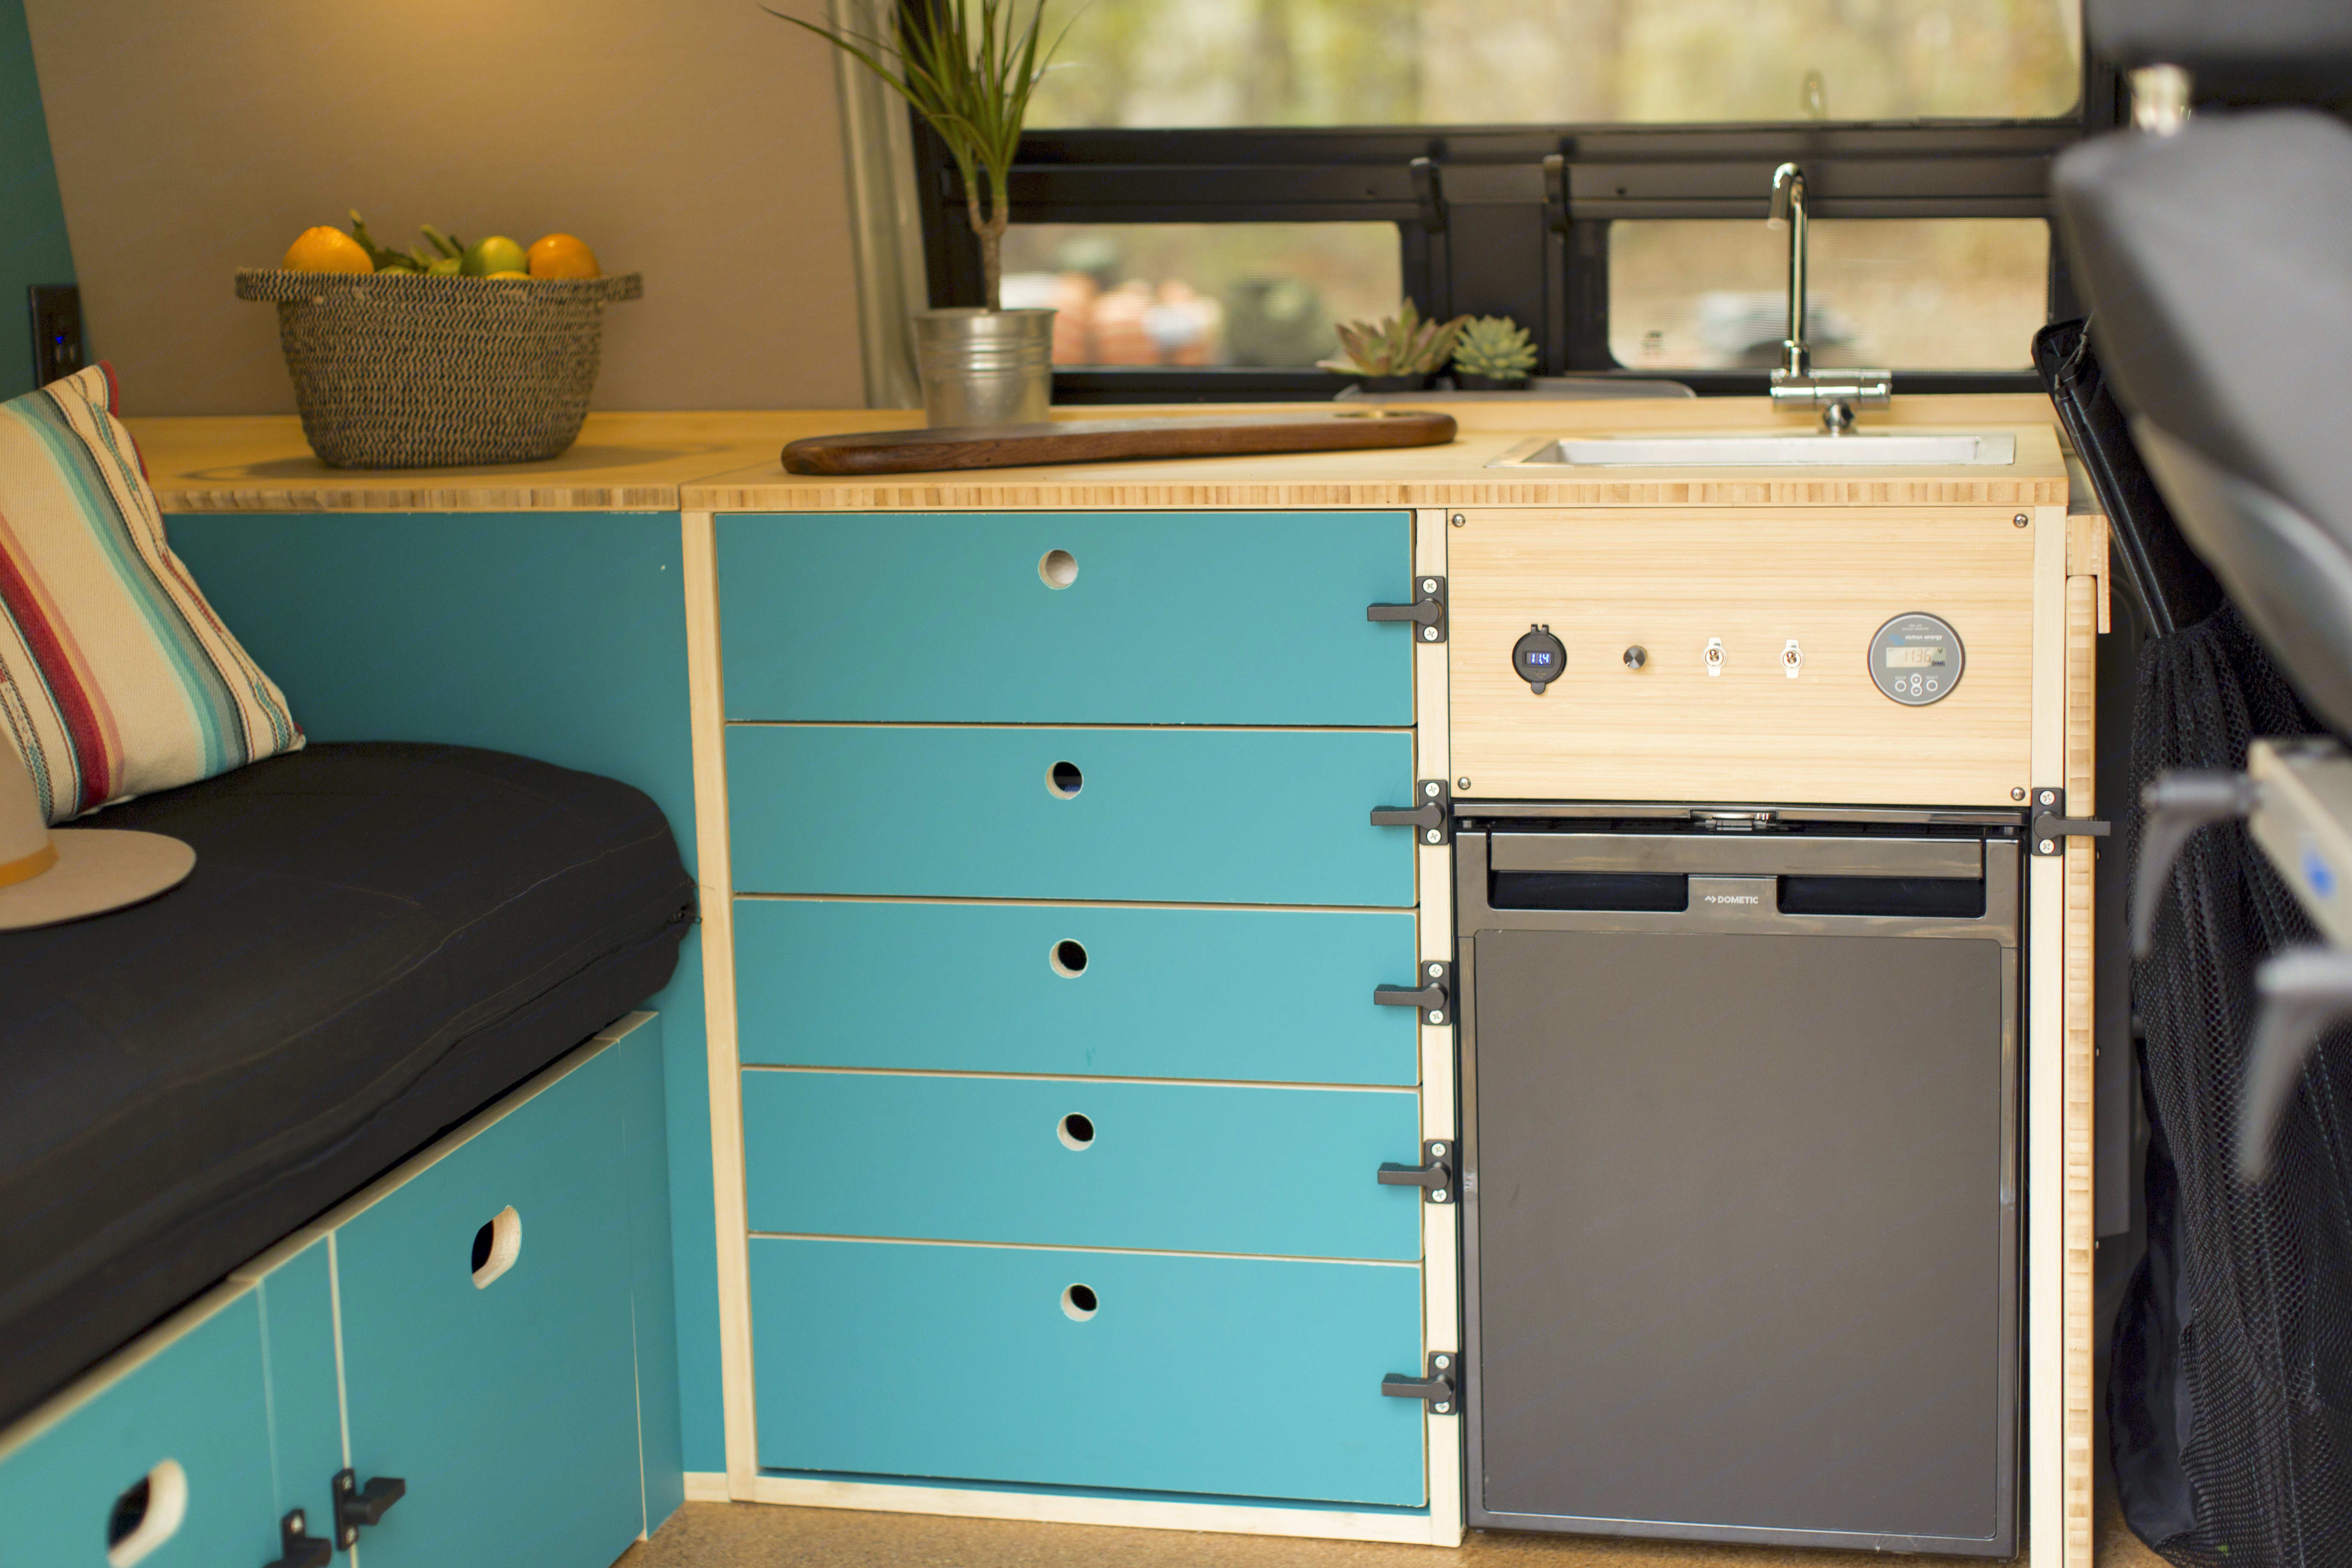 Our kitchen has a small sink, fridge and plenty of drawer and counter space to prep your finest campsite creations.. Mercedes-Benz Metris Pop-Top 2020